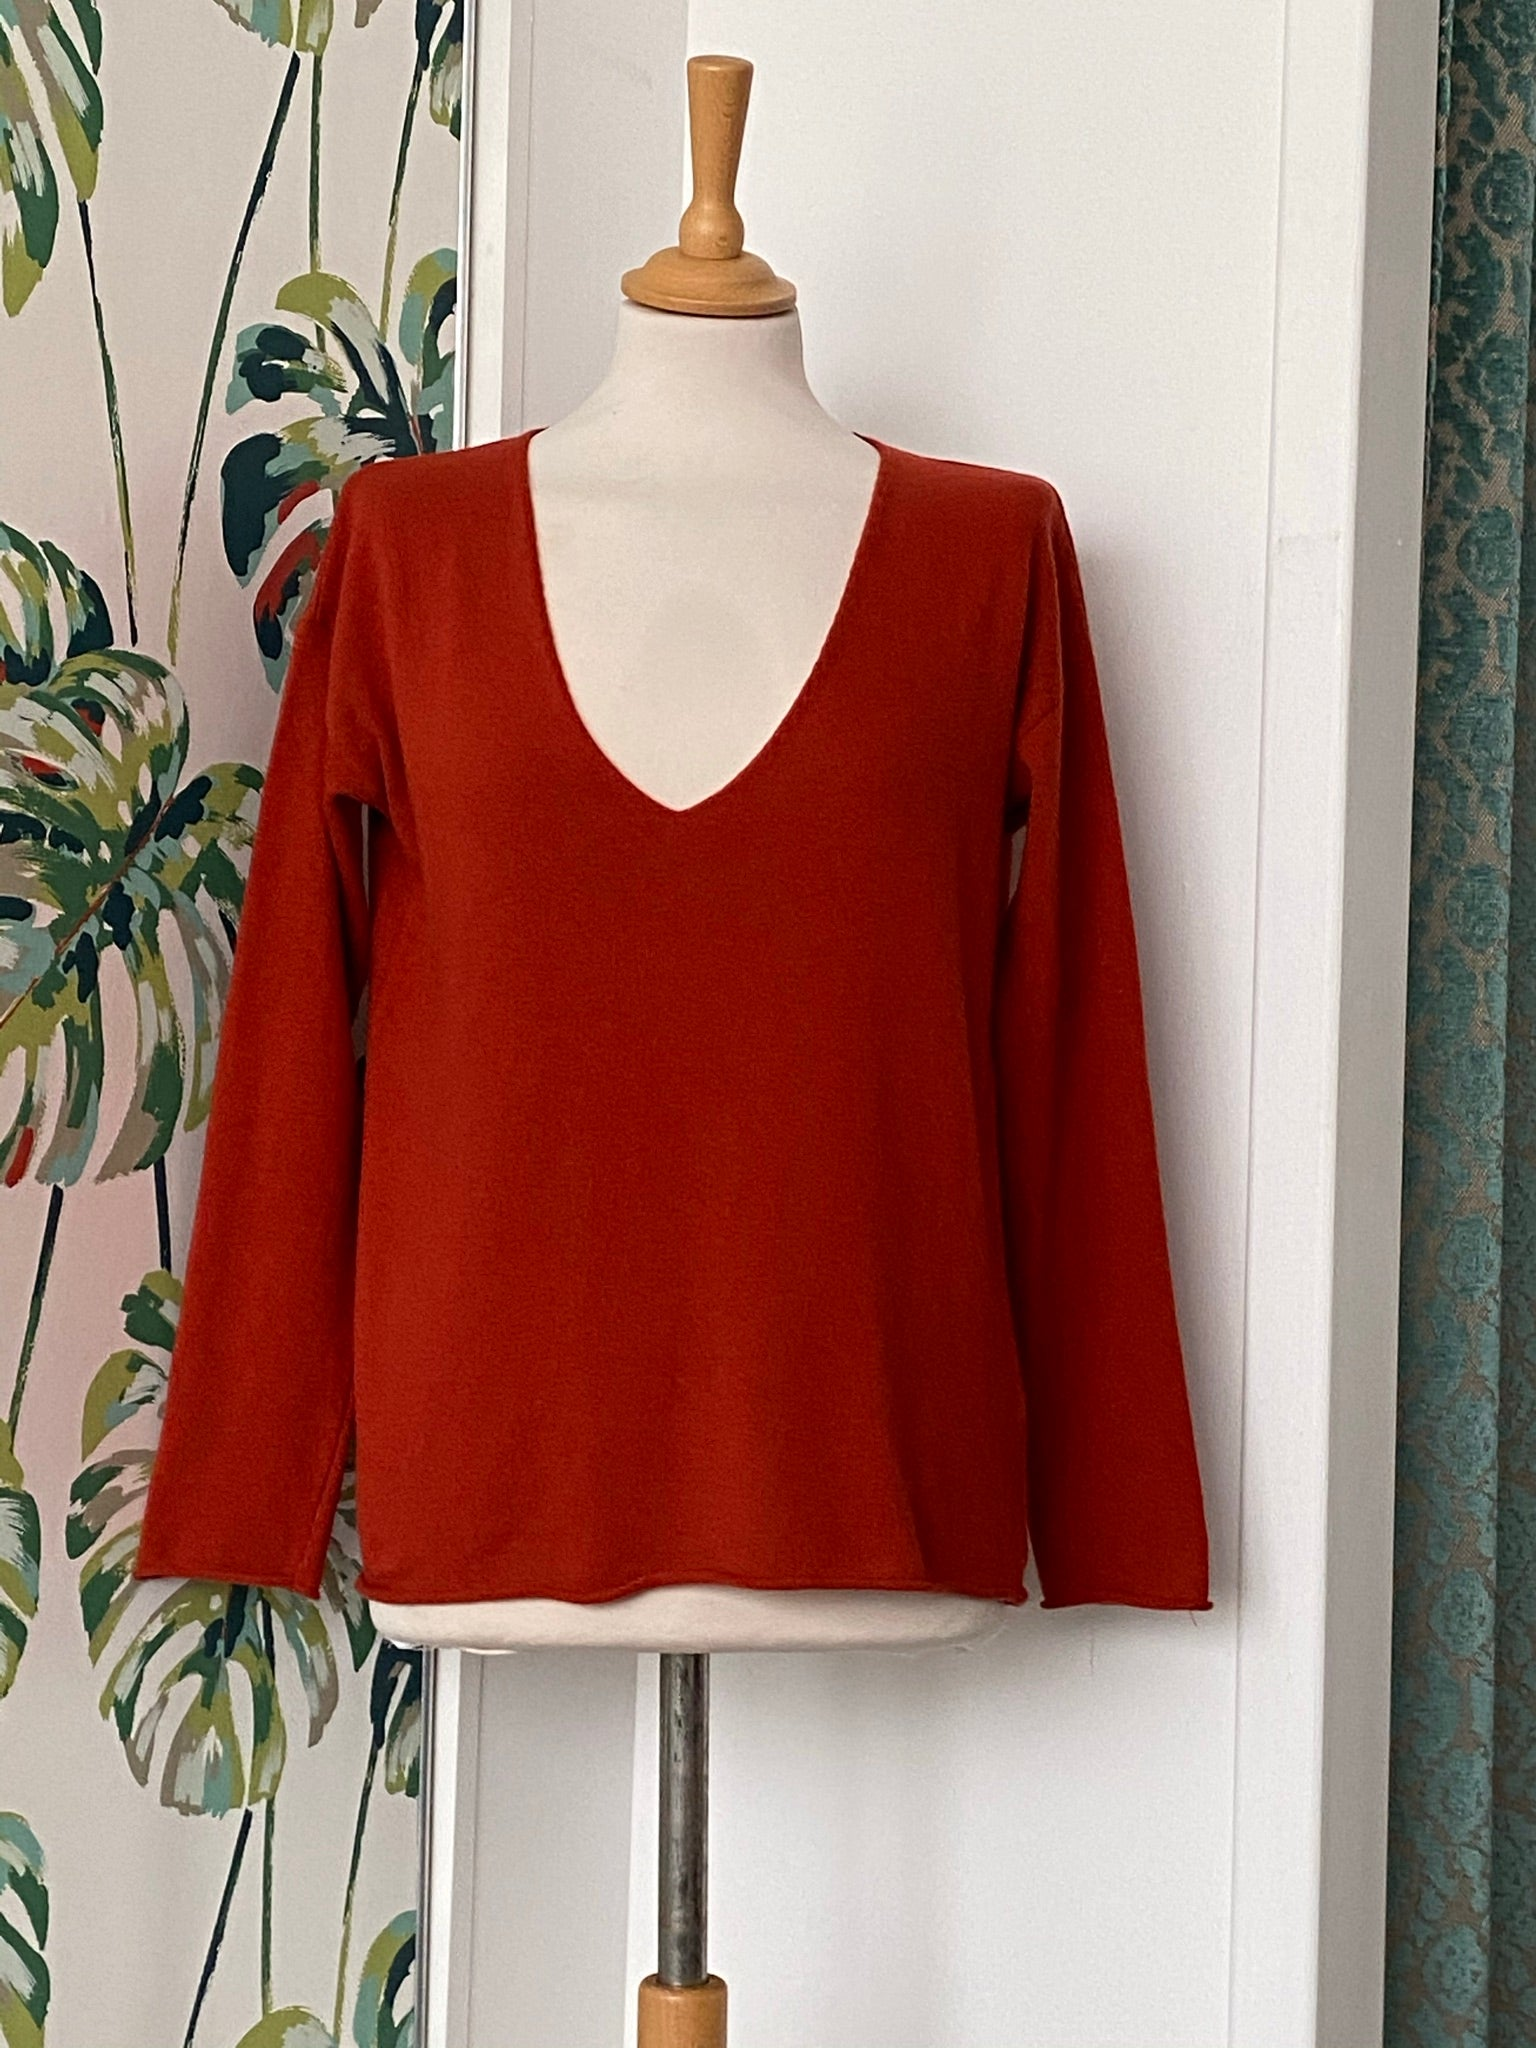 EseOEse V Neck Sweater - REDUCED